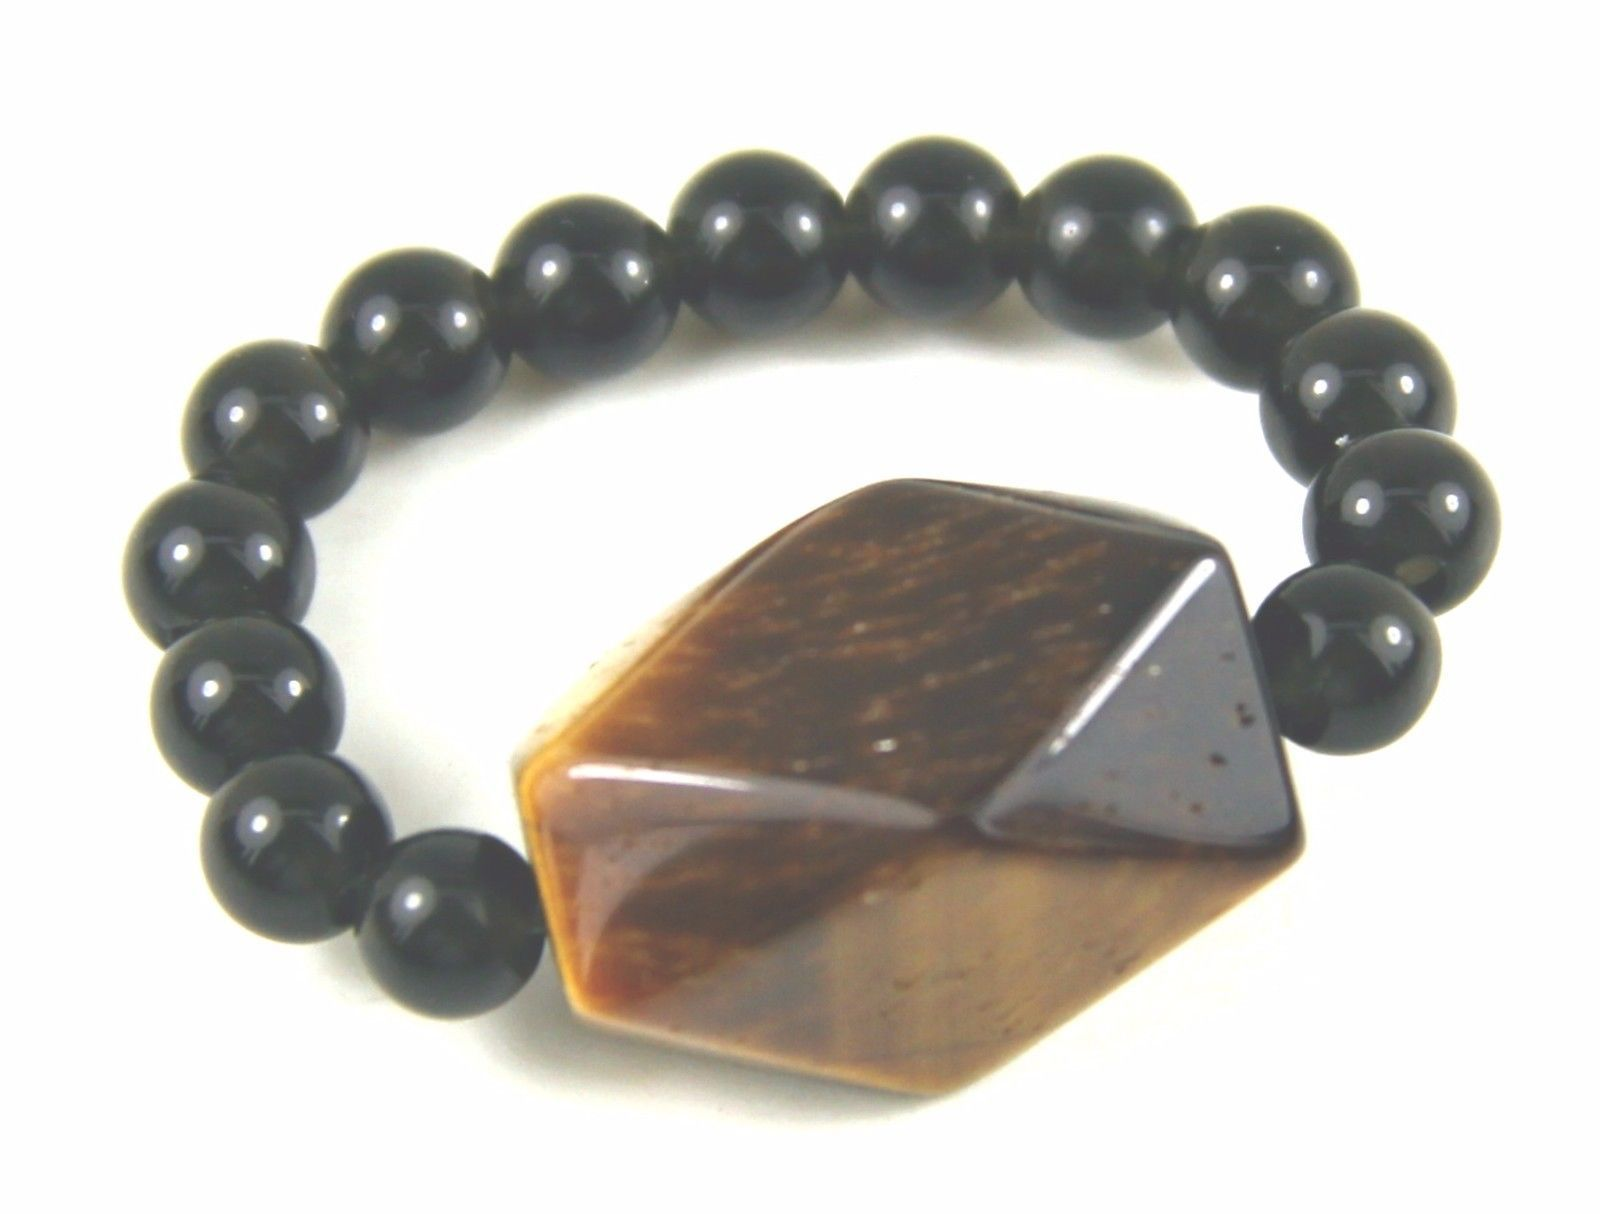 Ring, Genuine Gemstones of Faceted Tigers Eye Round Black Onyx Bead Stretch Ring